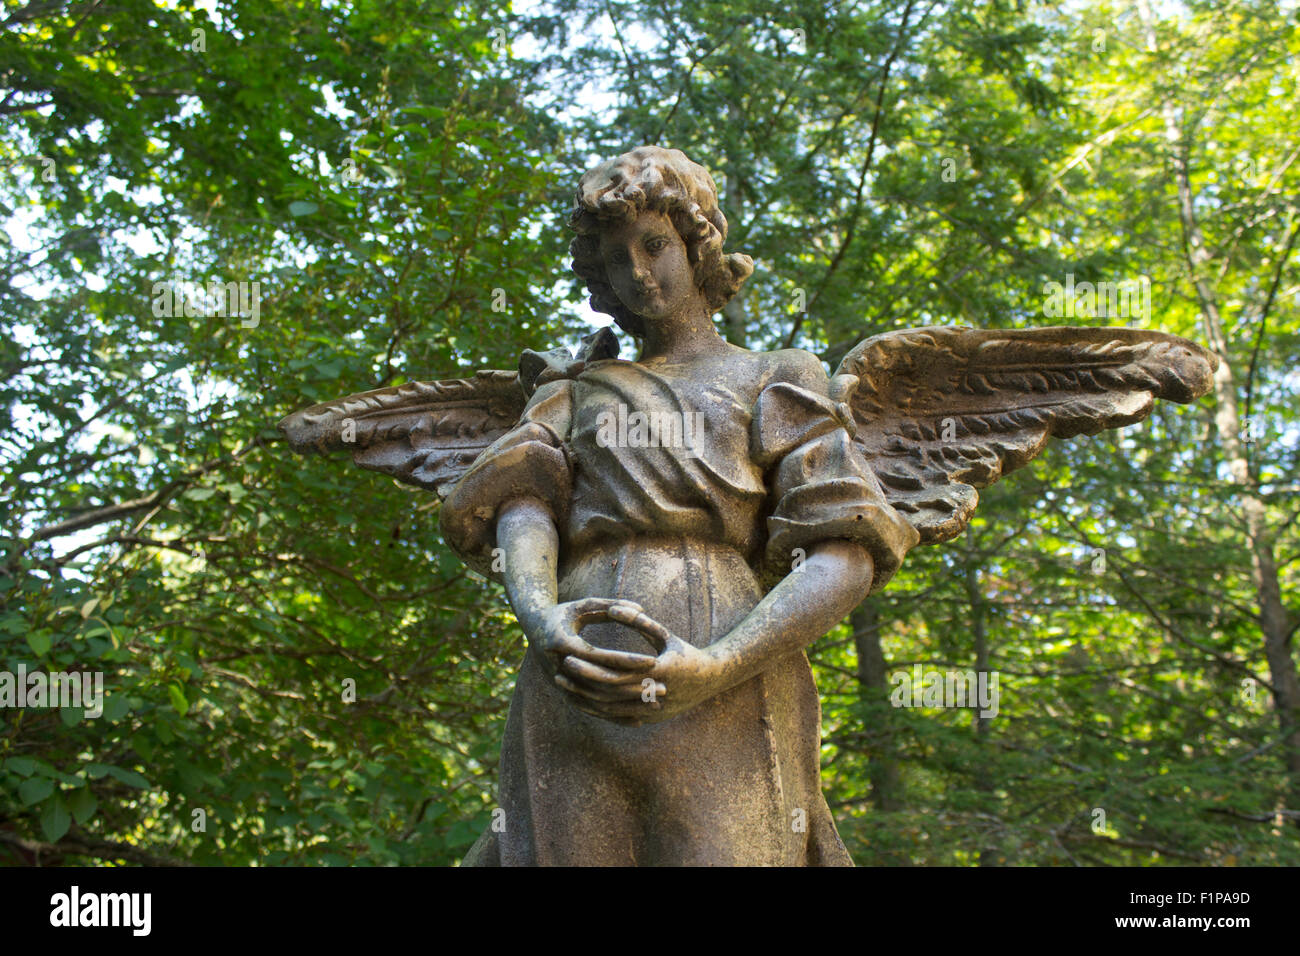 Angel statue in a forest. - Stock Image